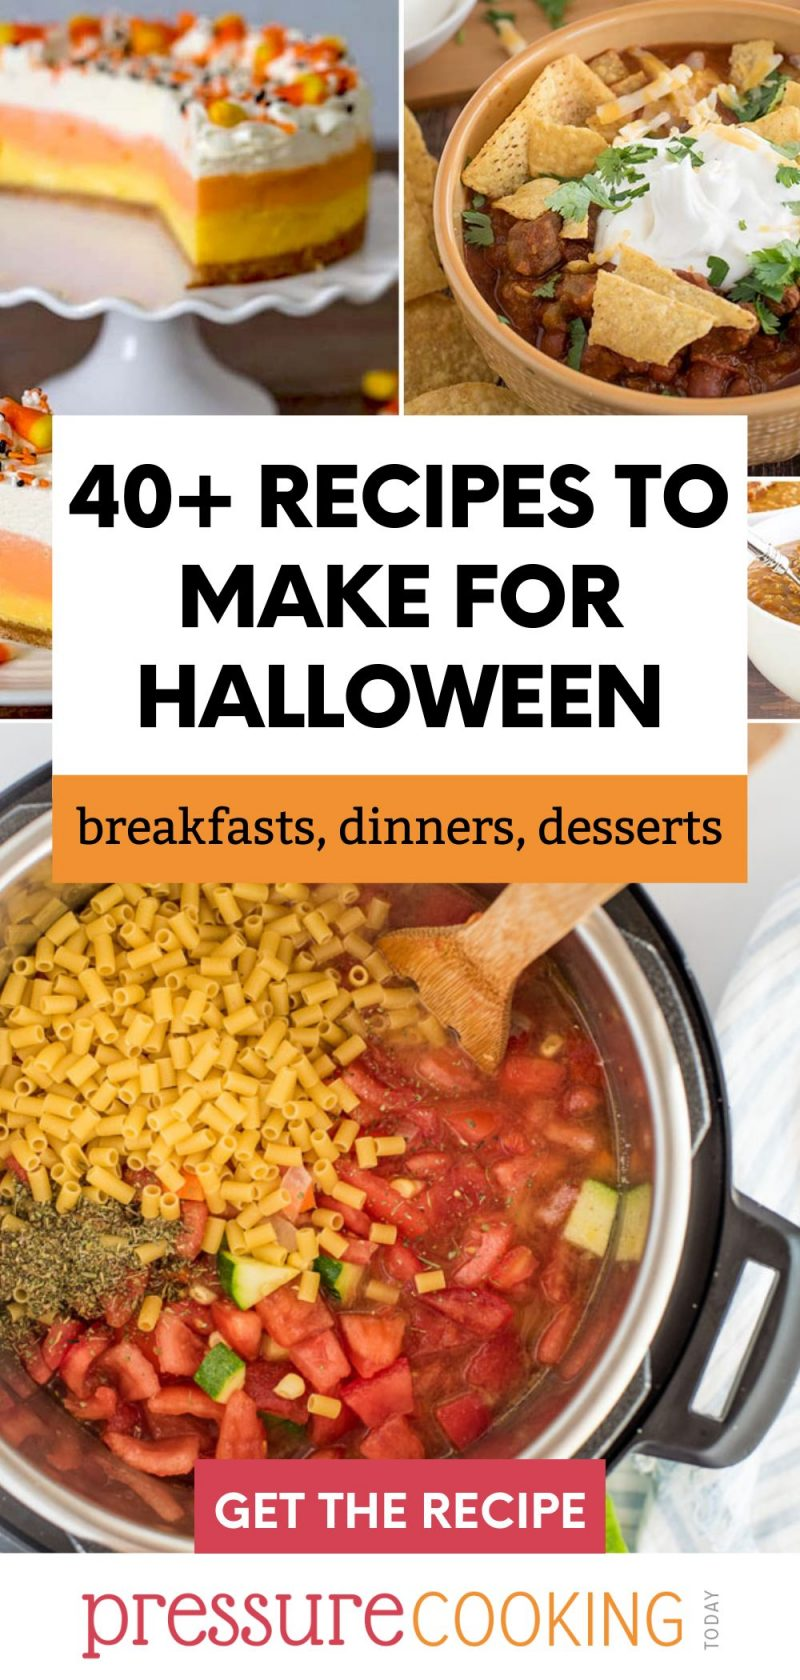 """Pinterest button that reads """"40+ recipes to make for Halloween: breakfasts, dinners, desserts"""" over a collage of images including candy corn cheesecake, chili con carne, and Instant Pot soup"""